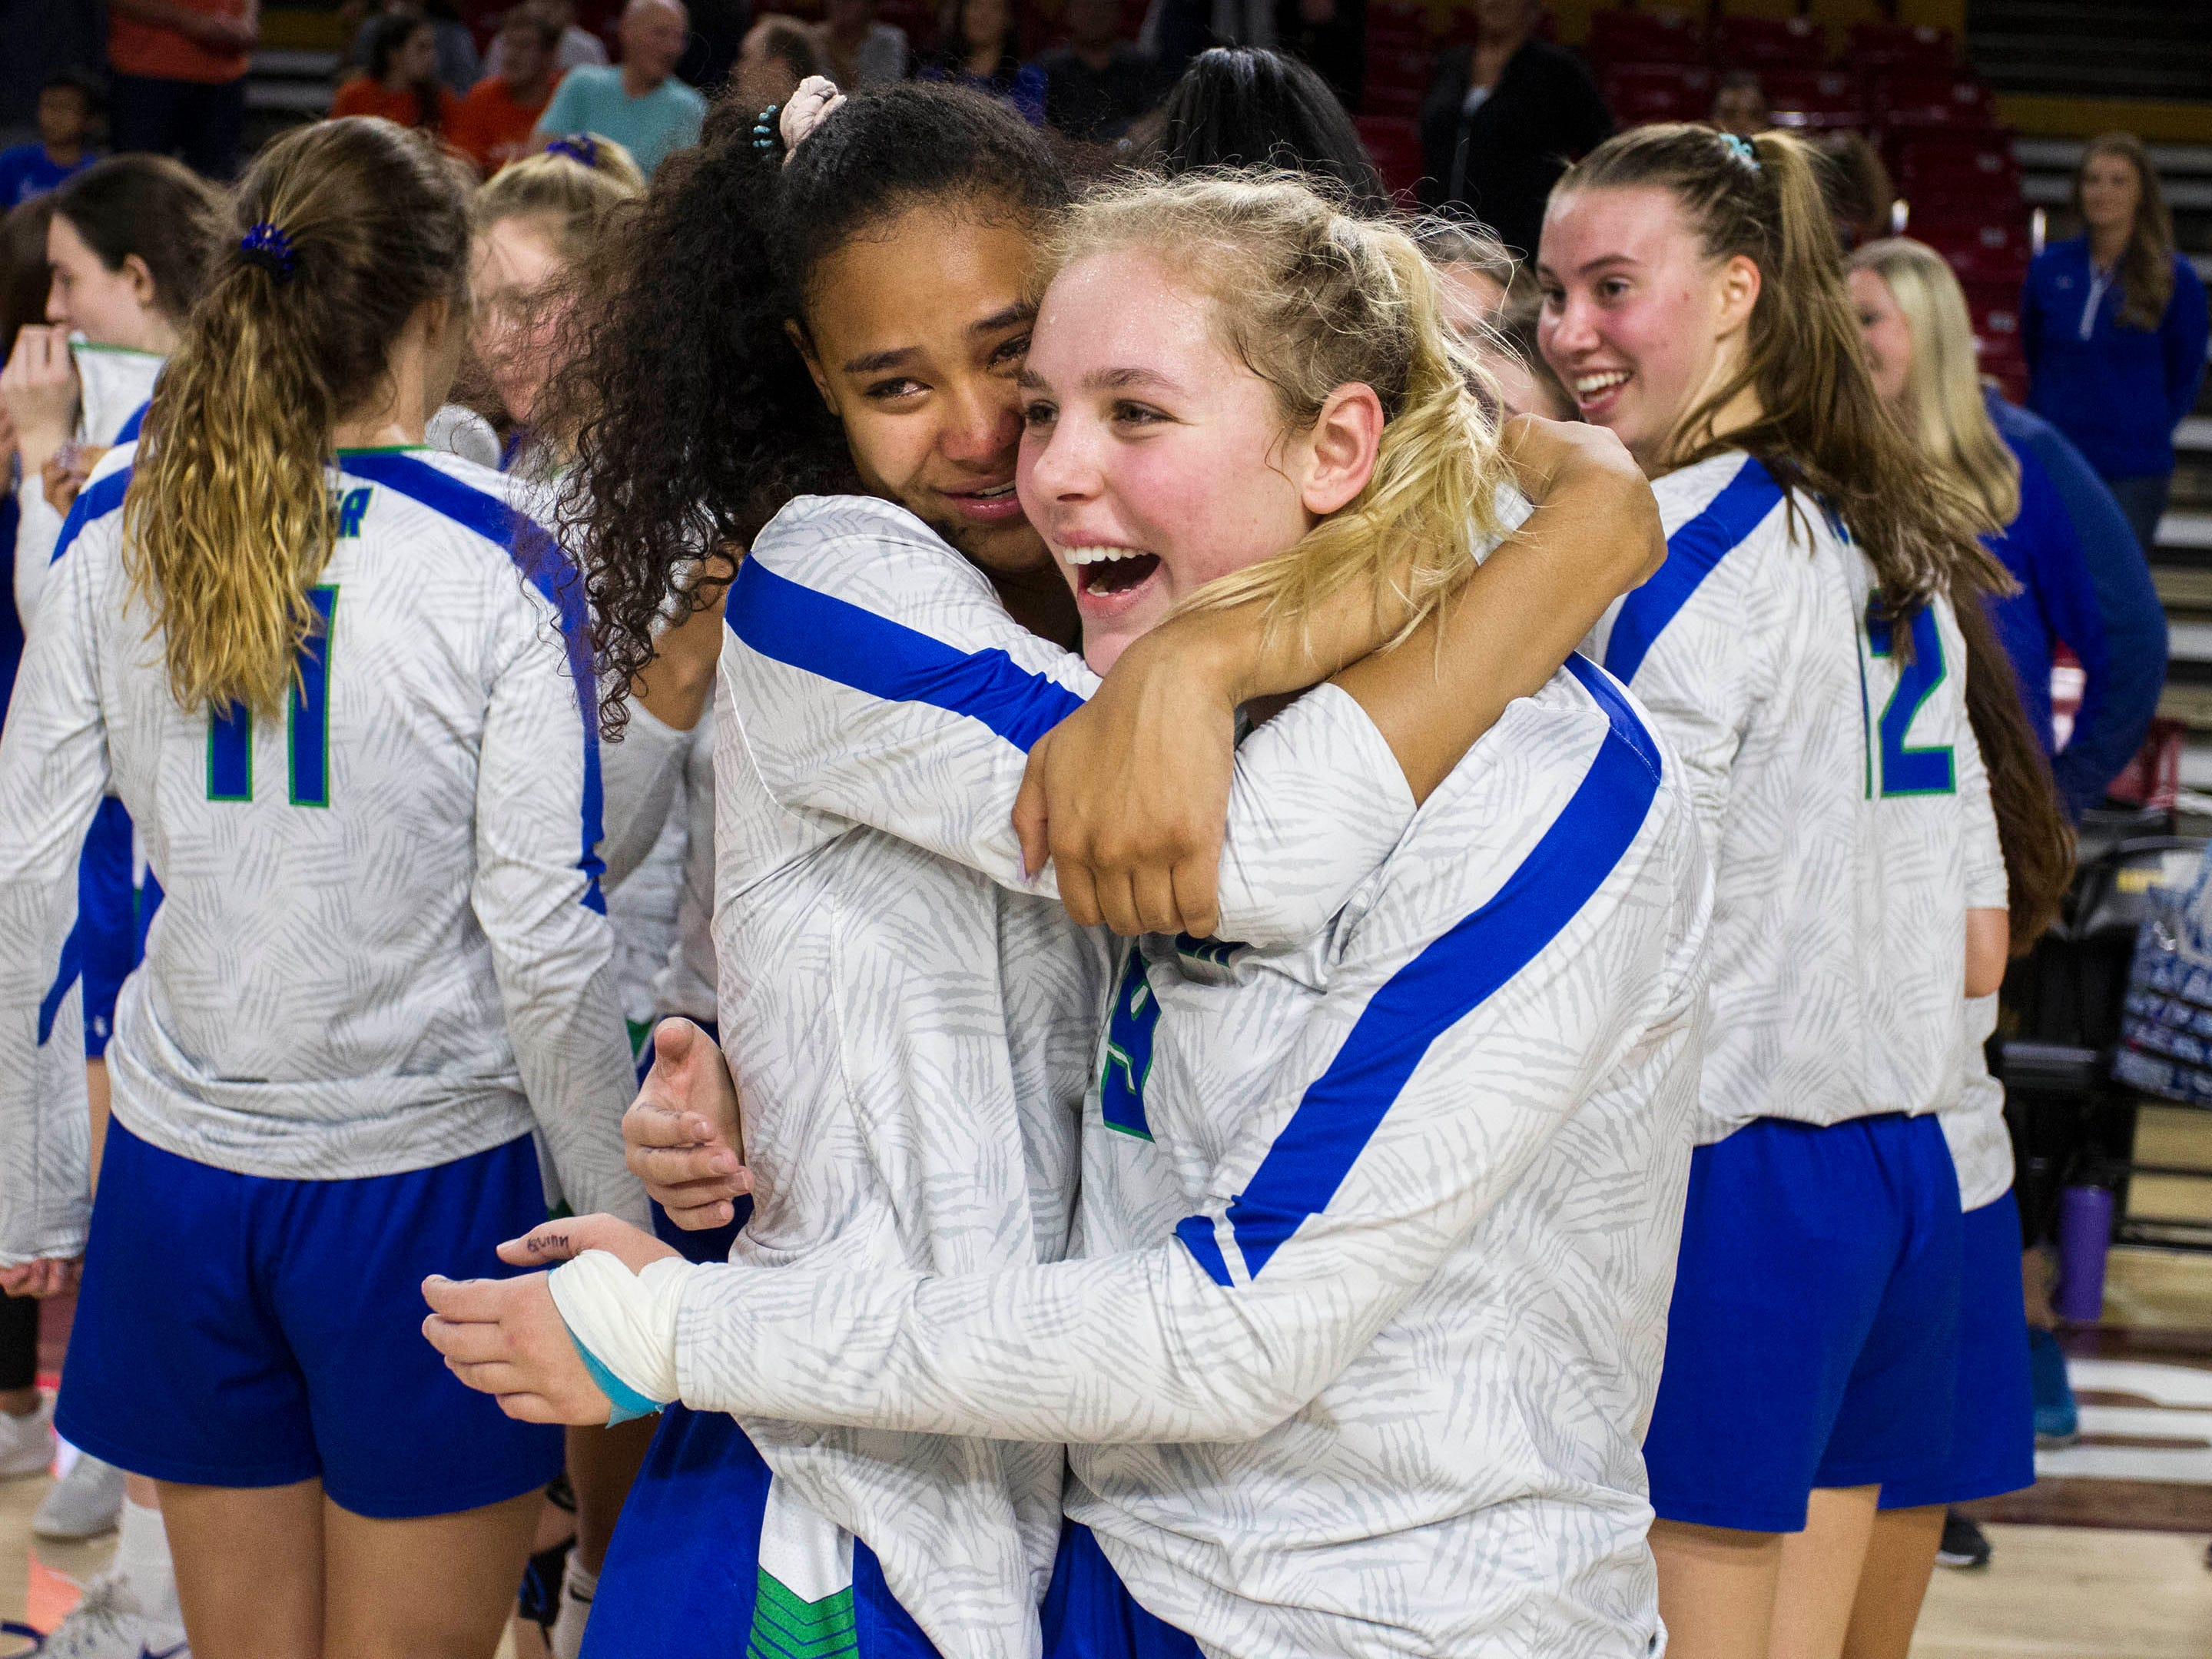 Xavier players Briana McKnight and Shannon Shields hug as they celebrate their three set win over Corona del Sol in the girls 6A volleyball state championship at Wells Fargo Arena in Tempe, Wednesday, Nov. 7, 2018.